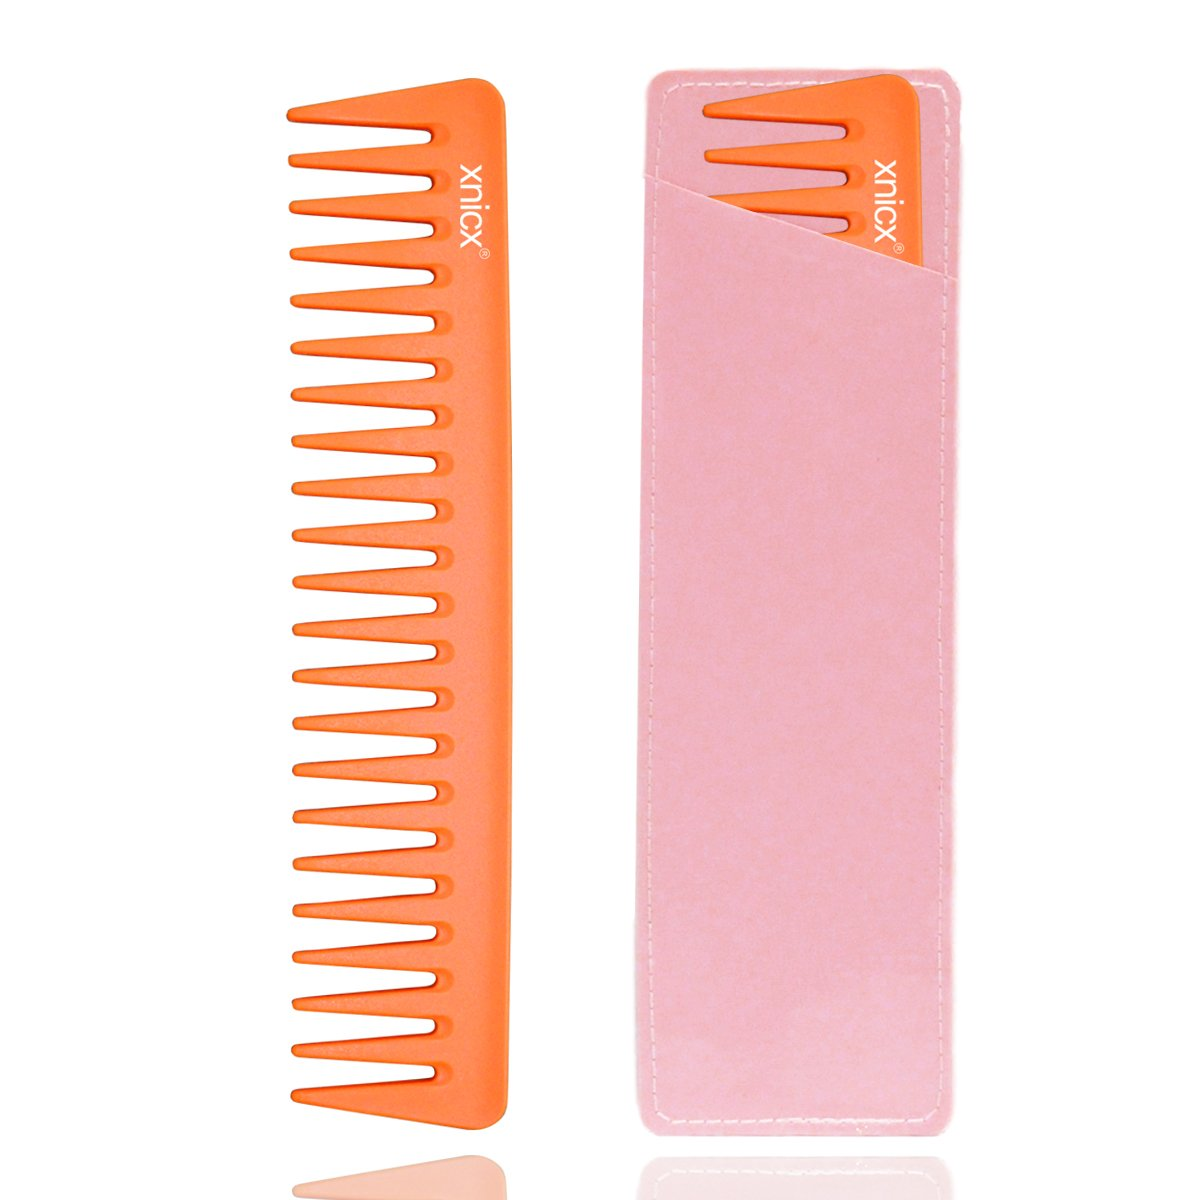 xnicx 605 Pink Barber Comb 180℃ Heat Resistant Cutting Comb Frizz off Fine Cutting Grip Comb Hairdressing Comb Master Barber Comb with shallow coarse and fine tooth-14 holes